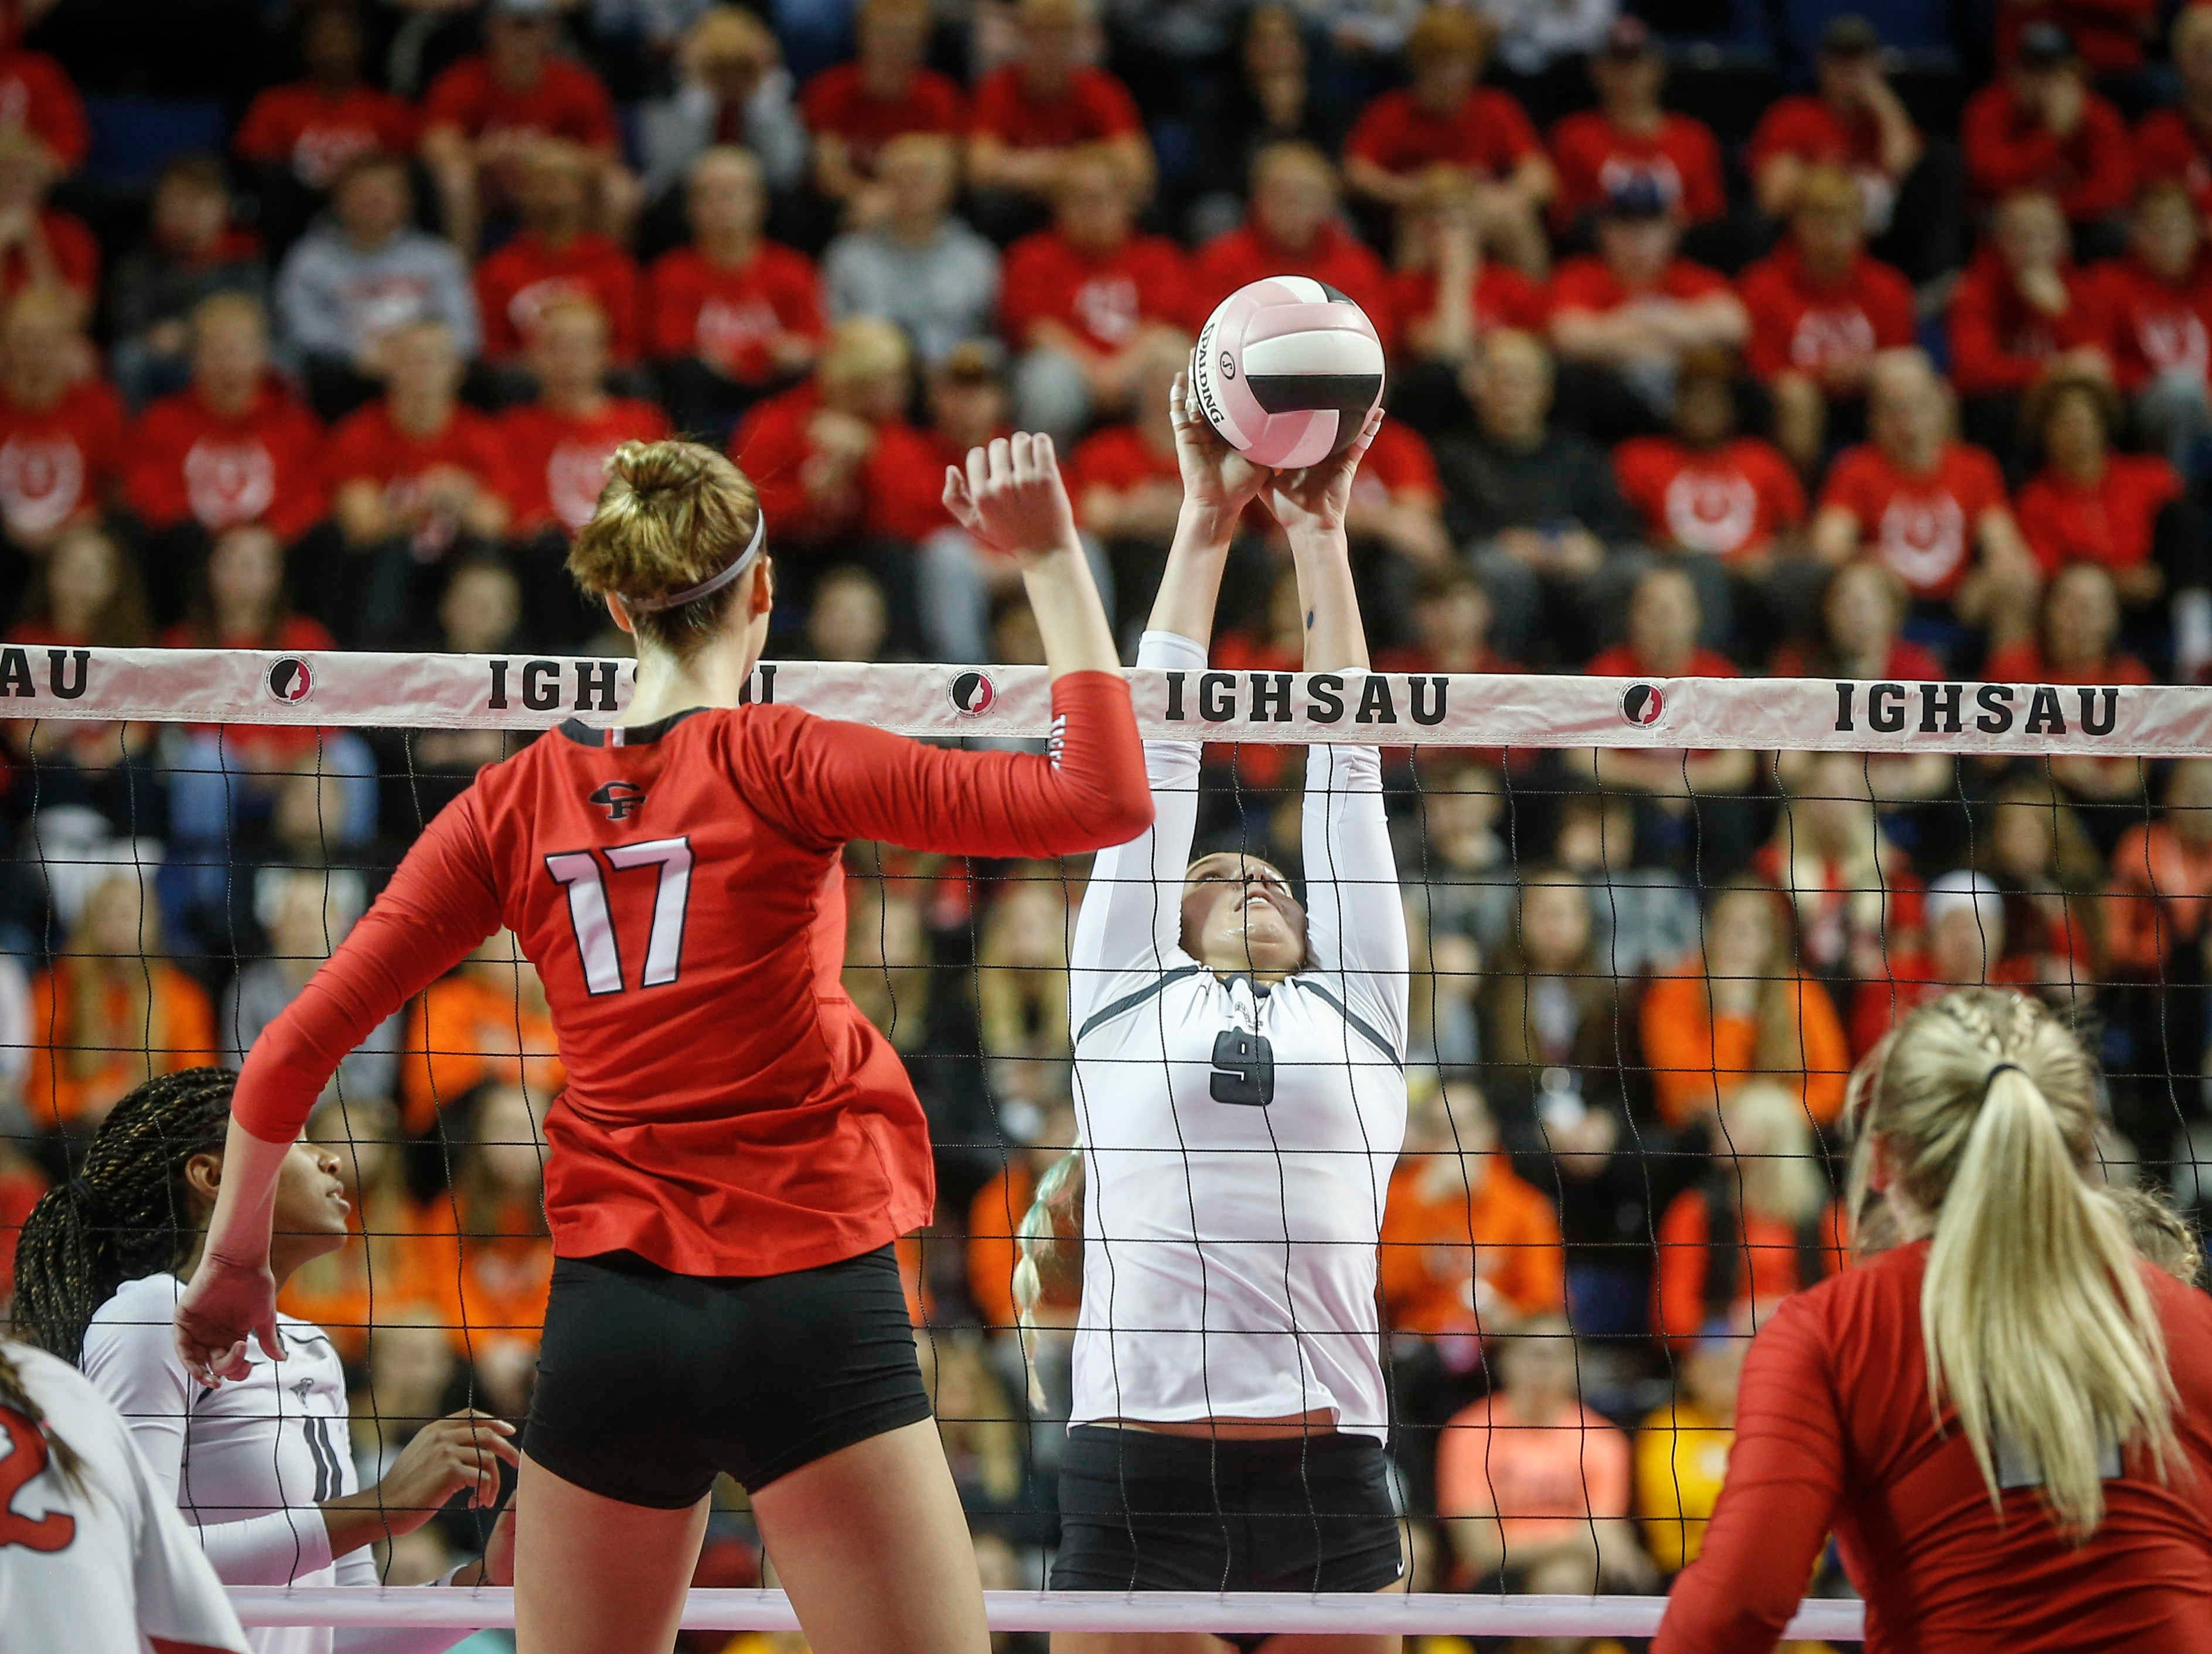 Ankeny Centennial's Kenna Sauer stops the ball at the net against Cedar Falls during the Class 5A state volleyball tournament championship game on Friday, Nov. 9, 2018, in Cedar Rapids.